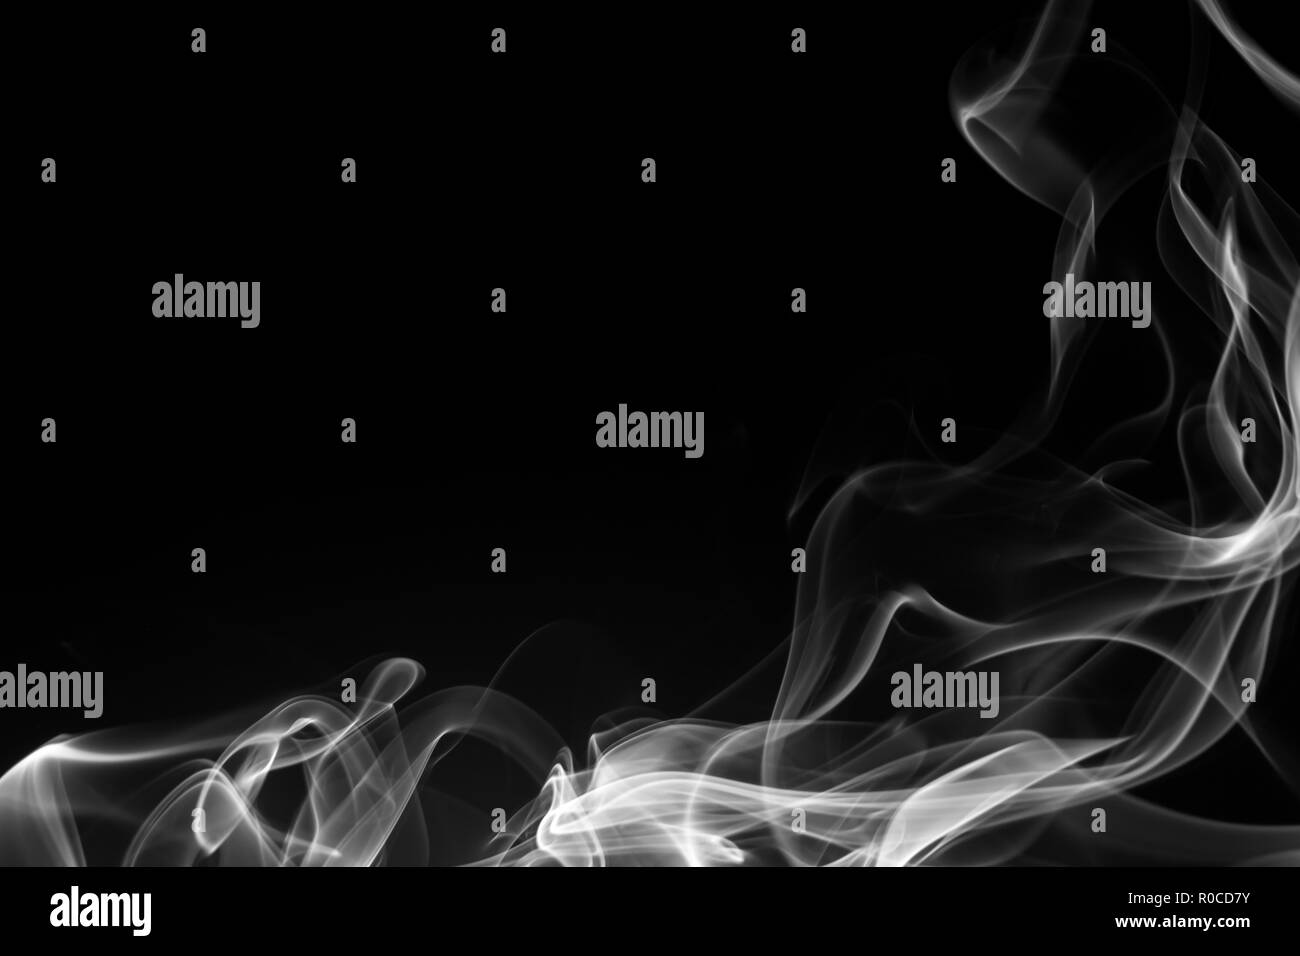 Smoke the white incense on a black background. darkness concept - Stock Image